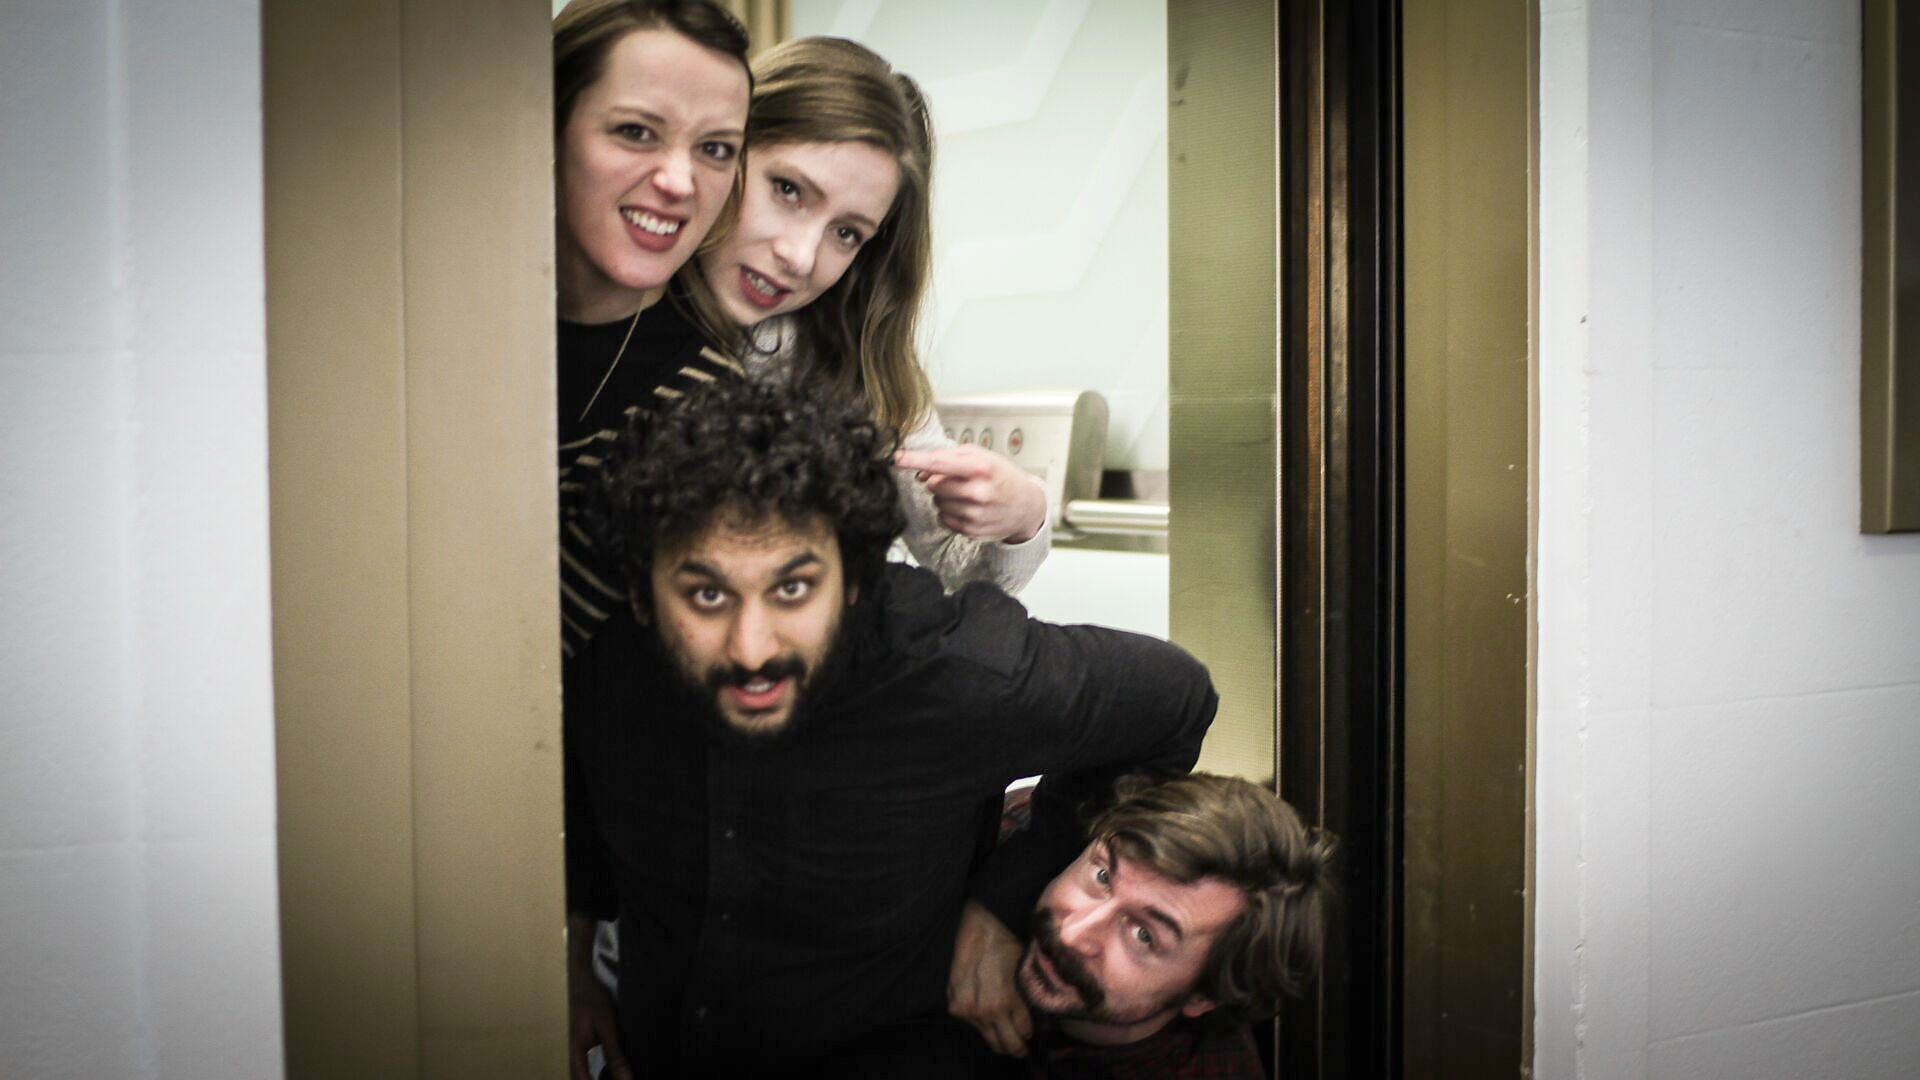 Four comedians squash into a doorframe.